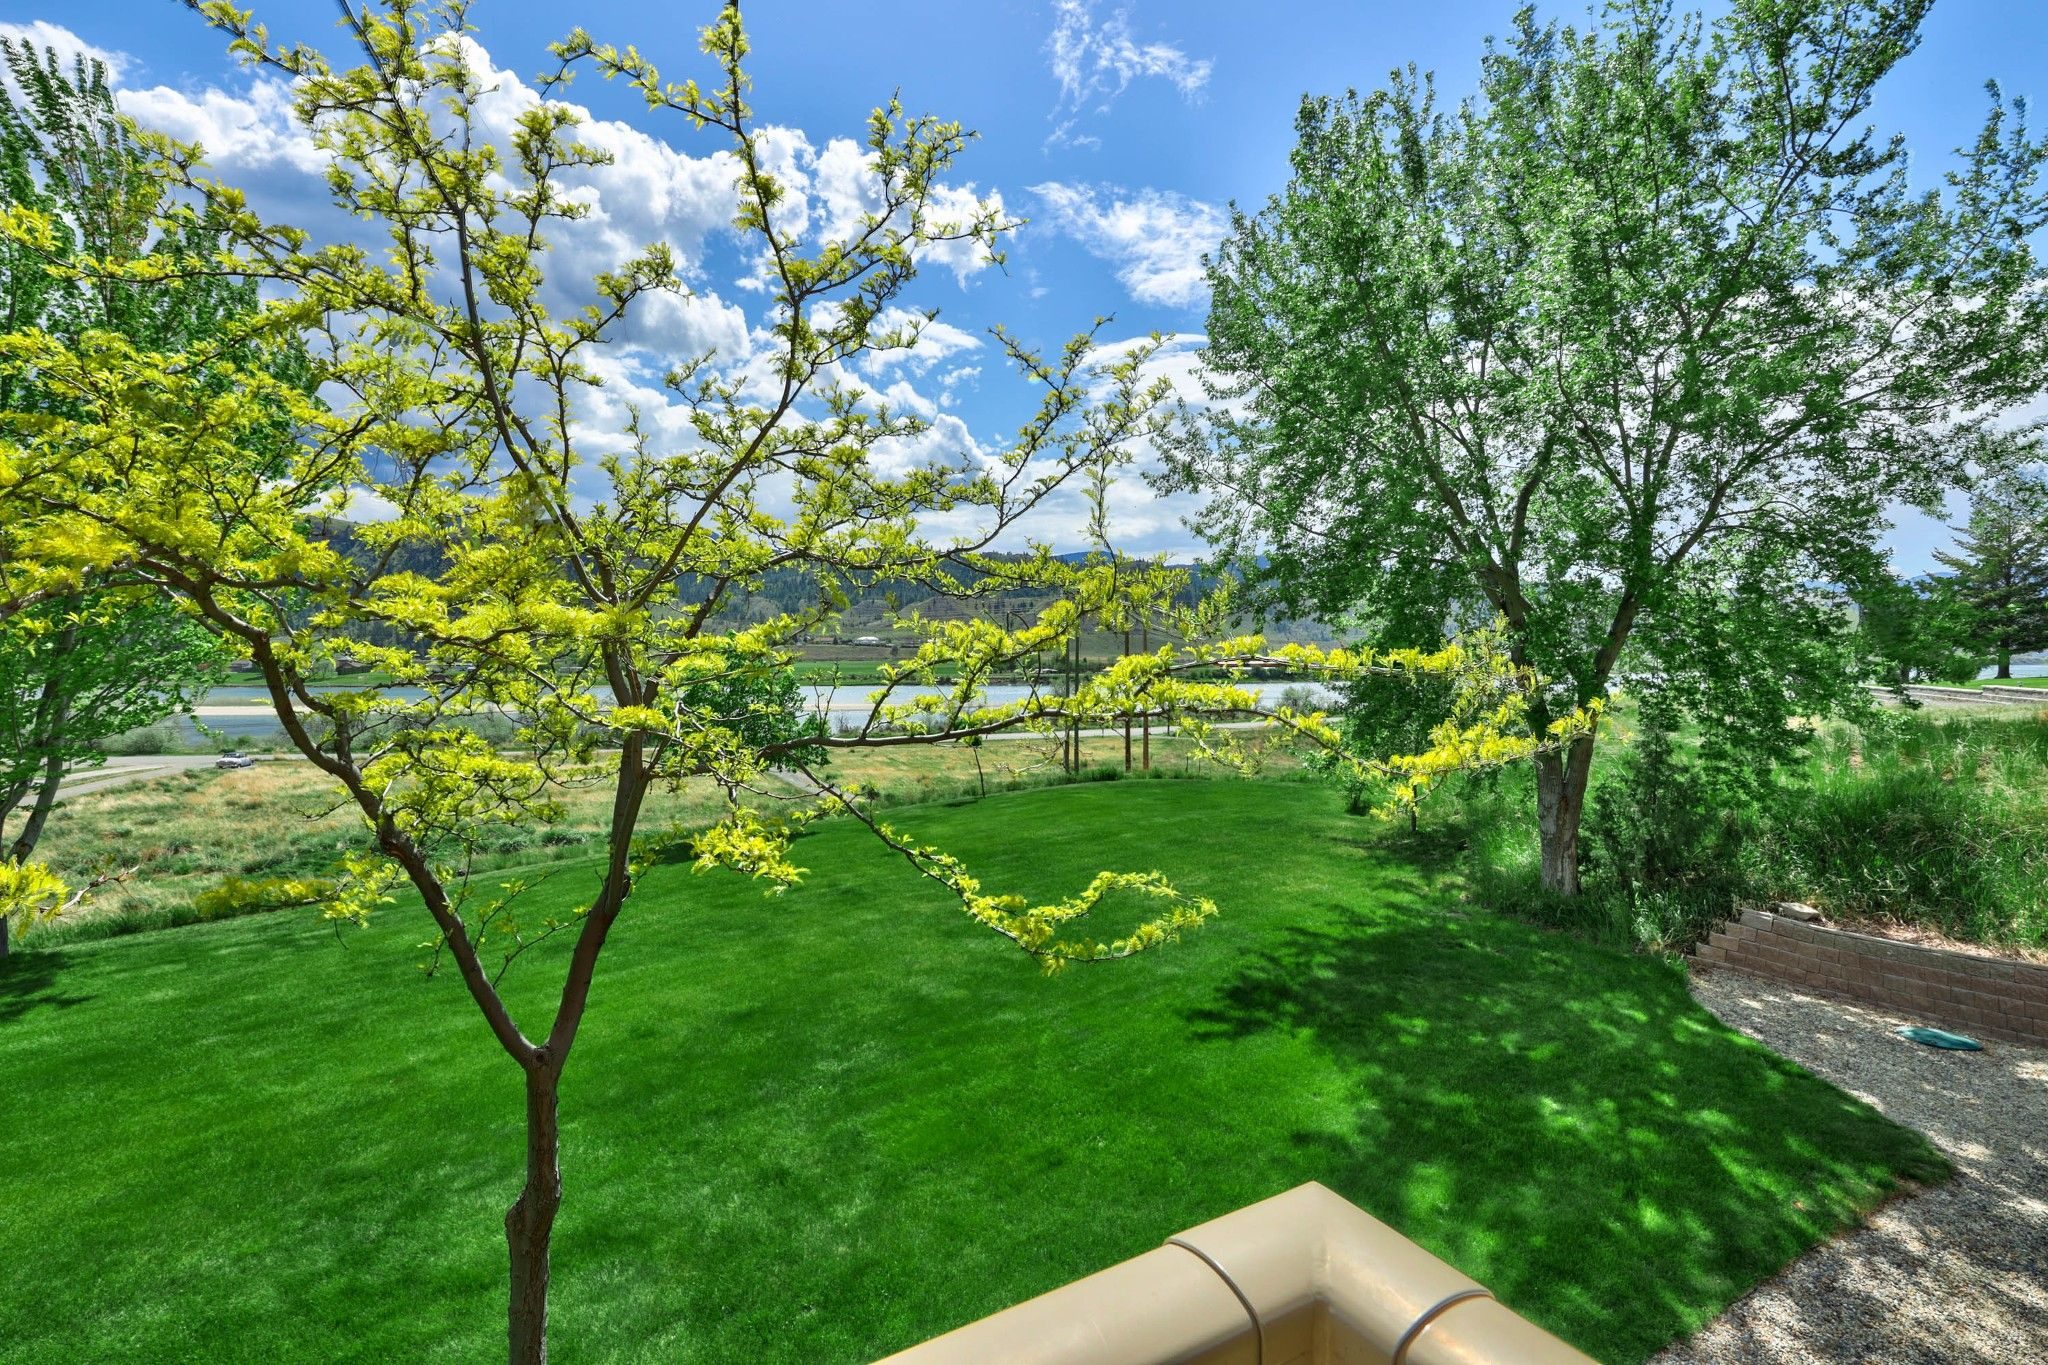 Photo 41: Photos: 3299 E Shuswap Road in Kamloops: South Thompson Valley House for sale : MLS®# 162162